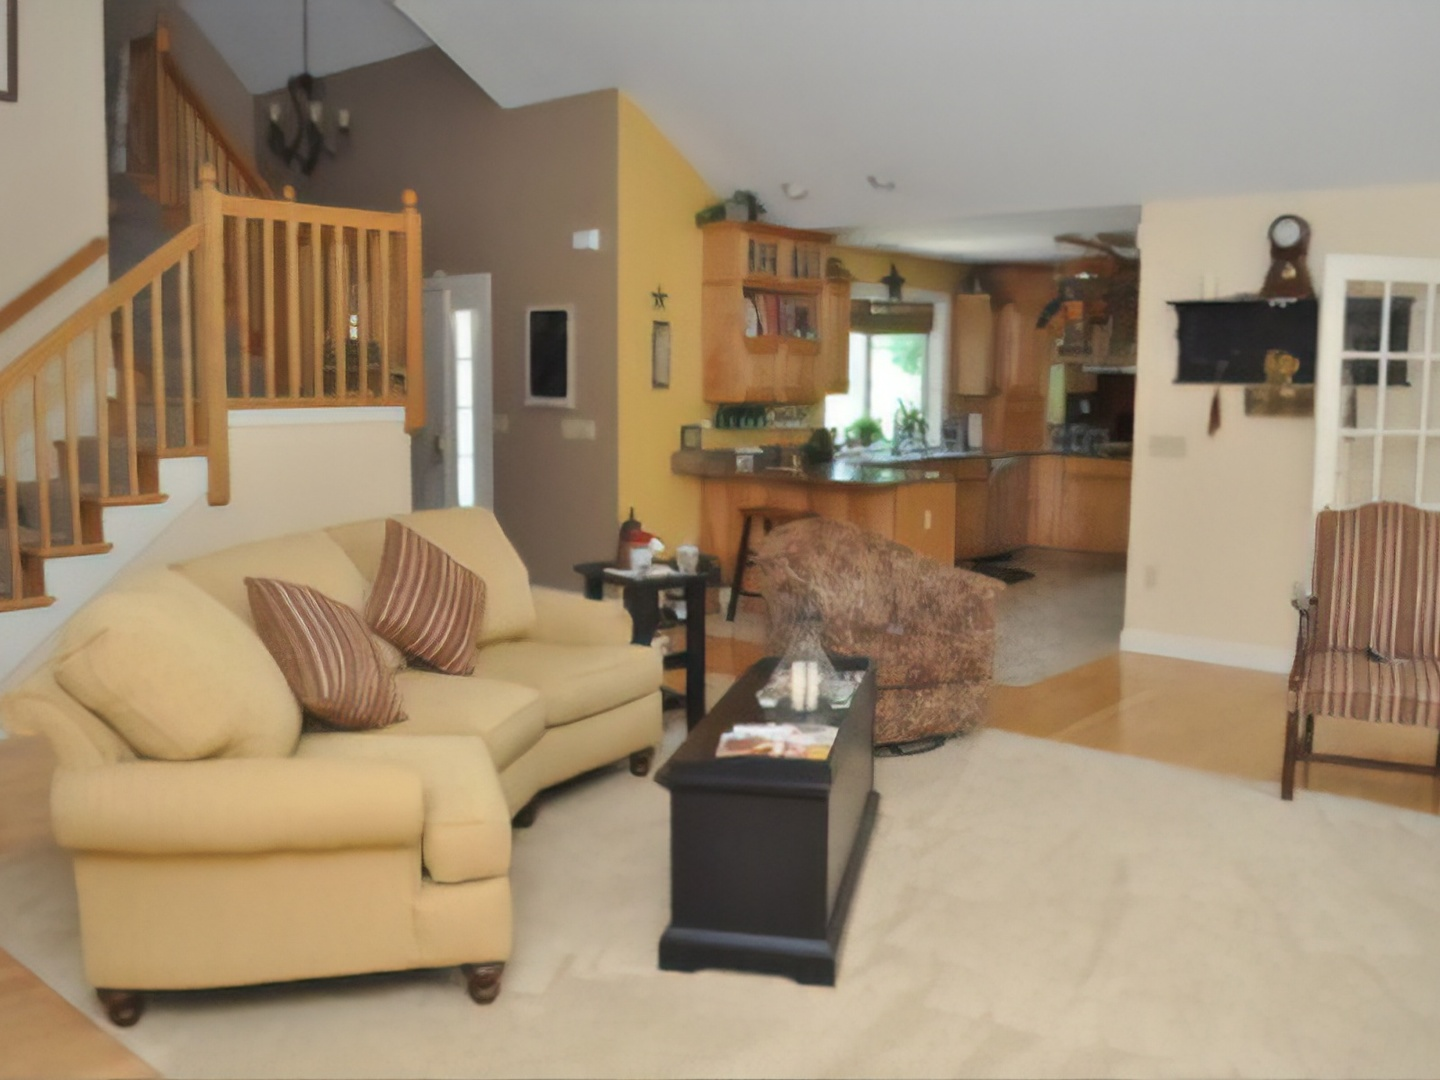 A living room filled with furniture and a fireplace at Hammer Creek Hideaway Bed & Breakfast.